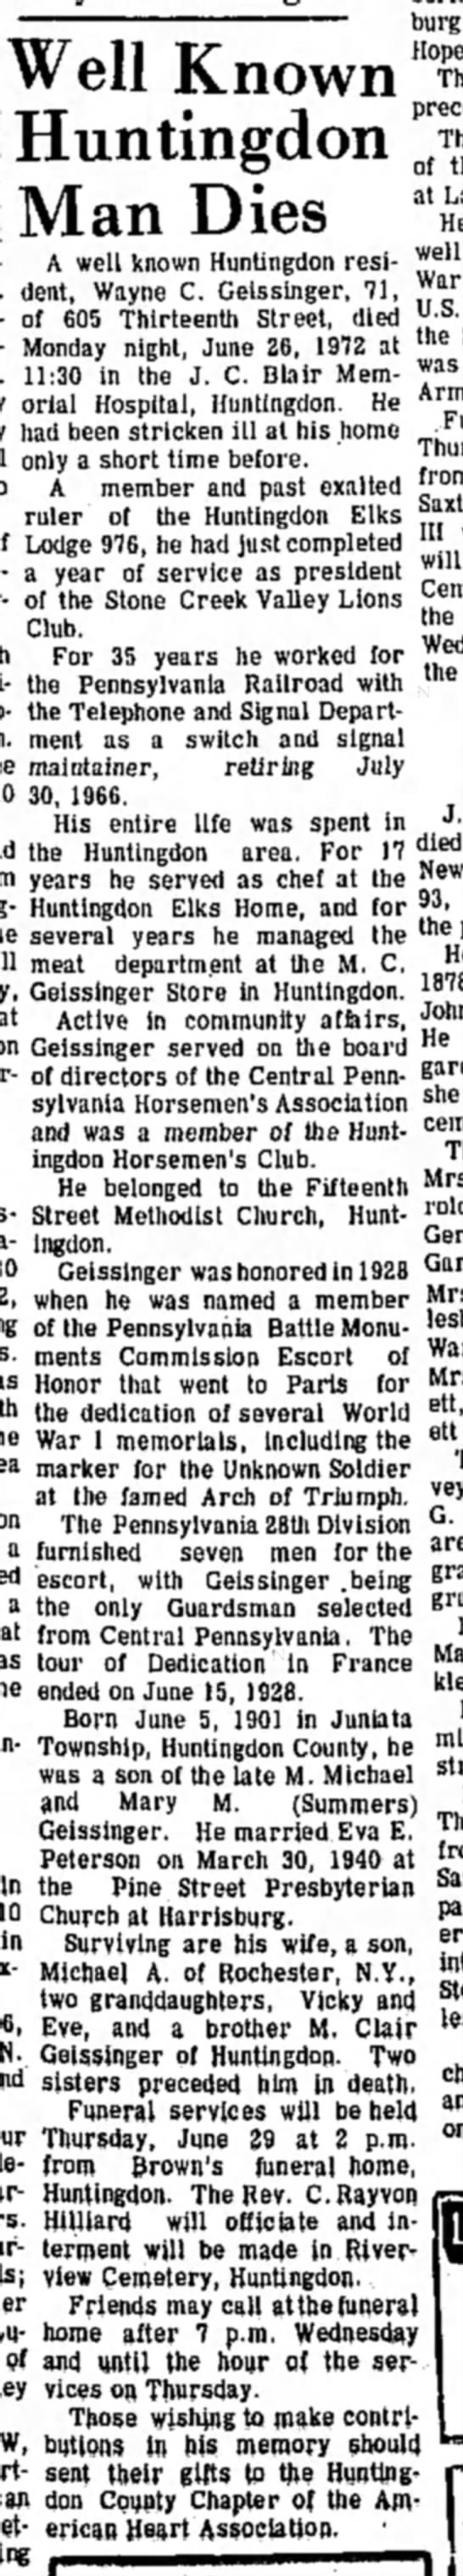 June 27, 1972; Daily News - Well Man Dies A well known Huntingdon resi- of...